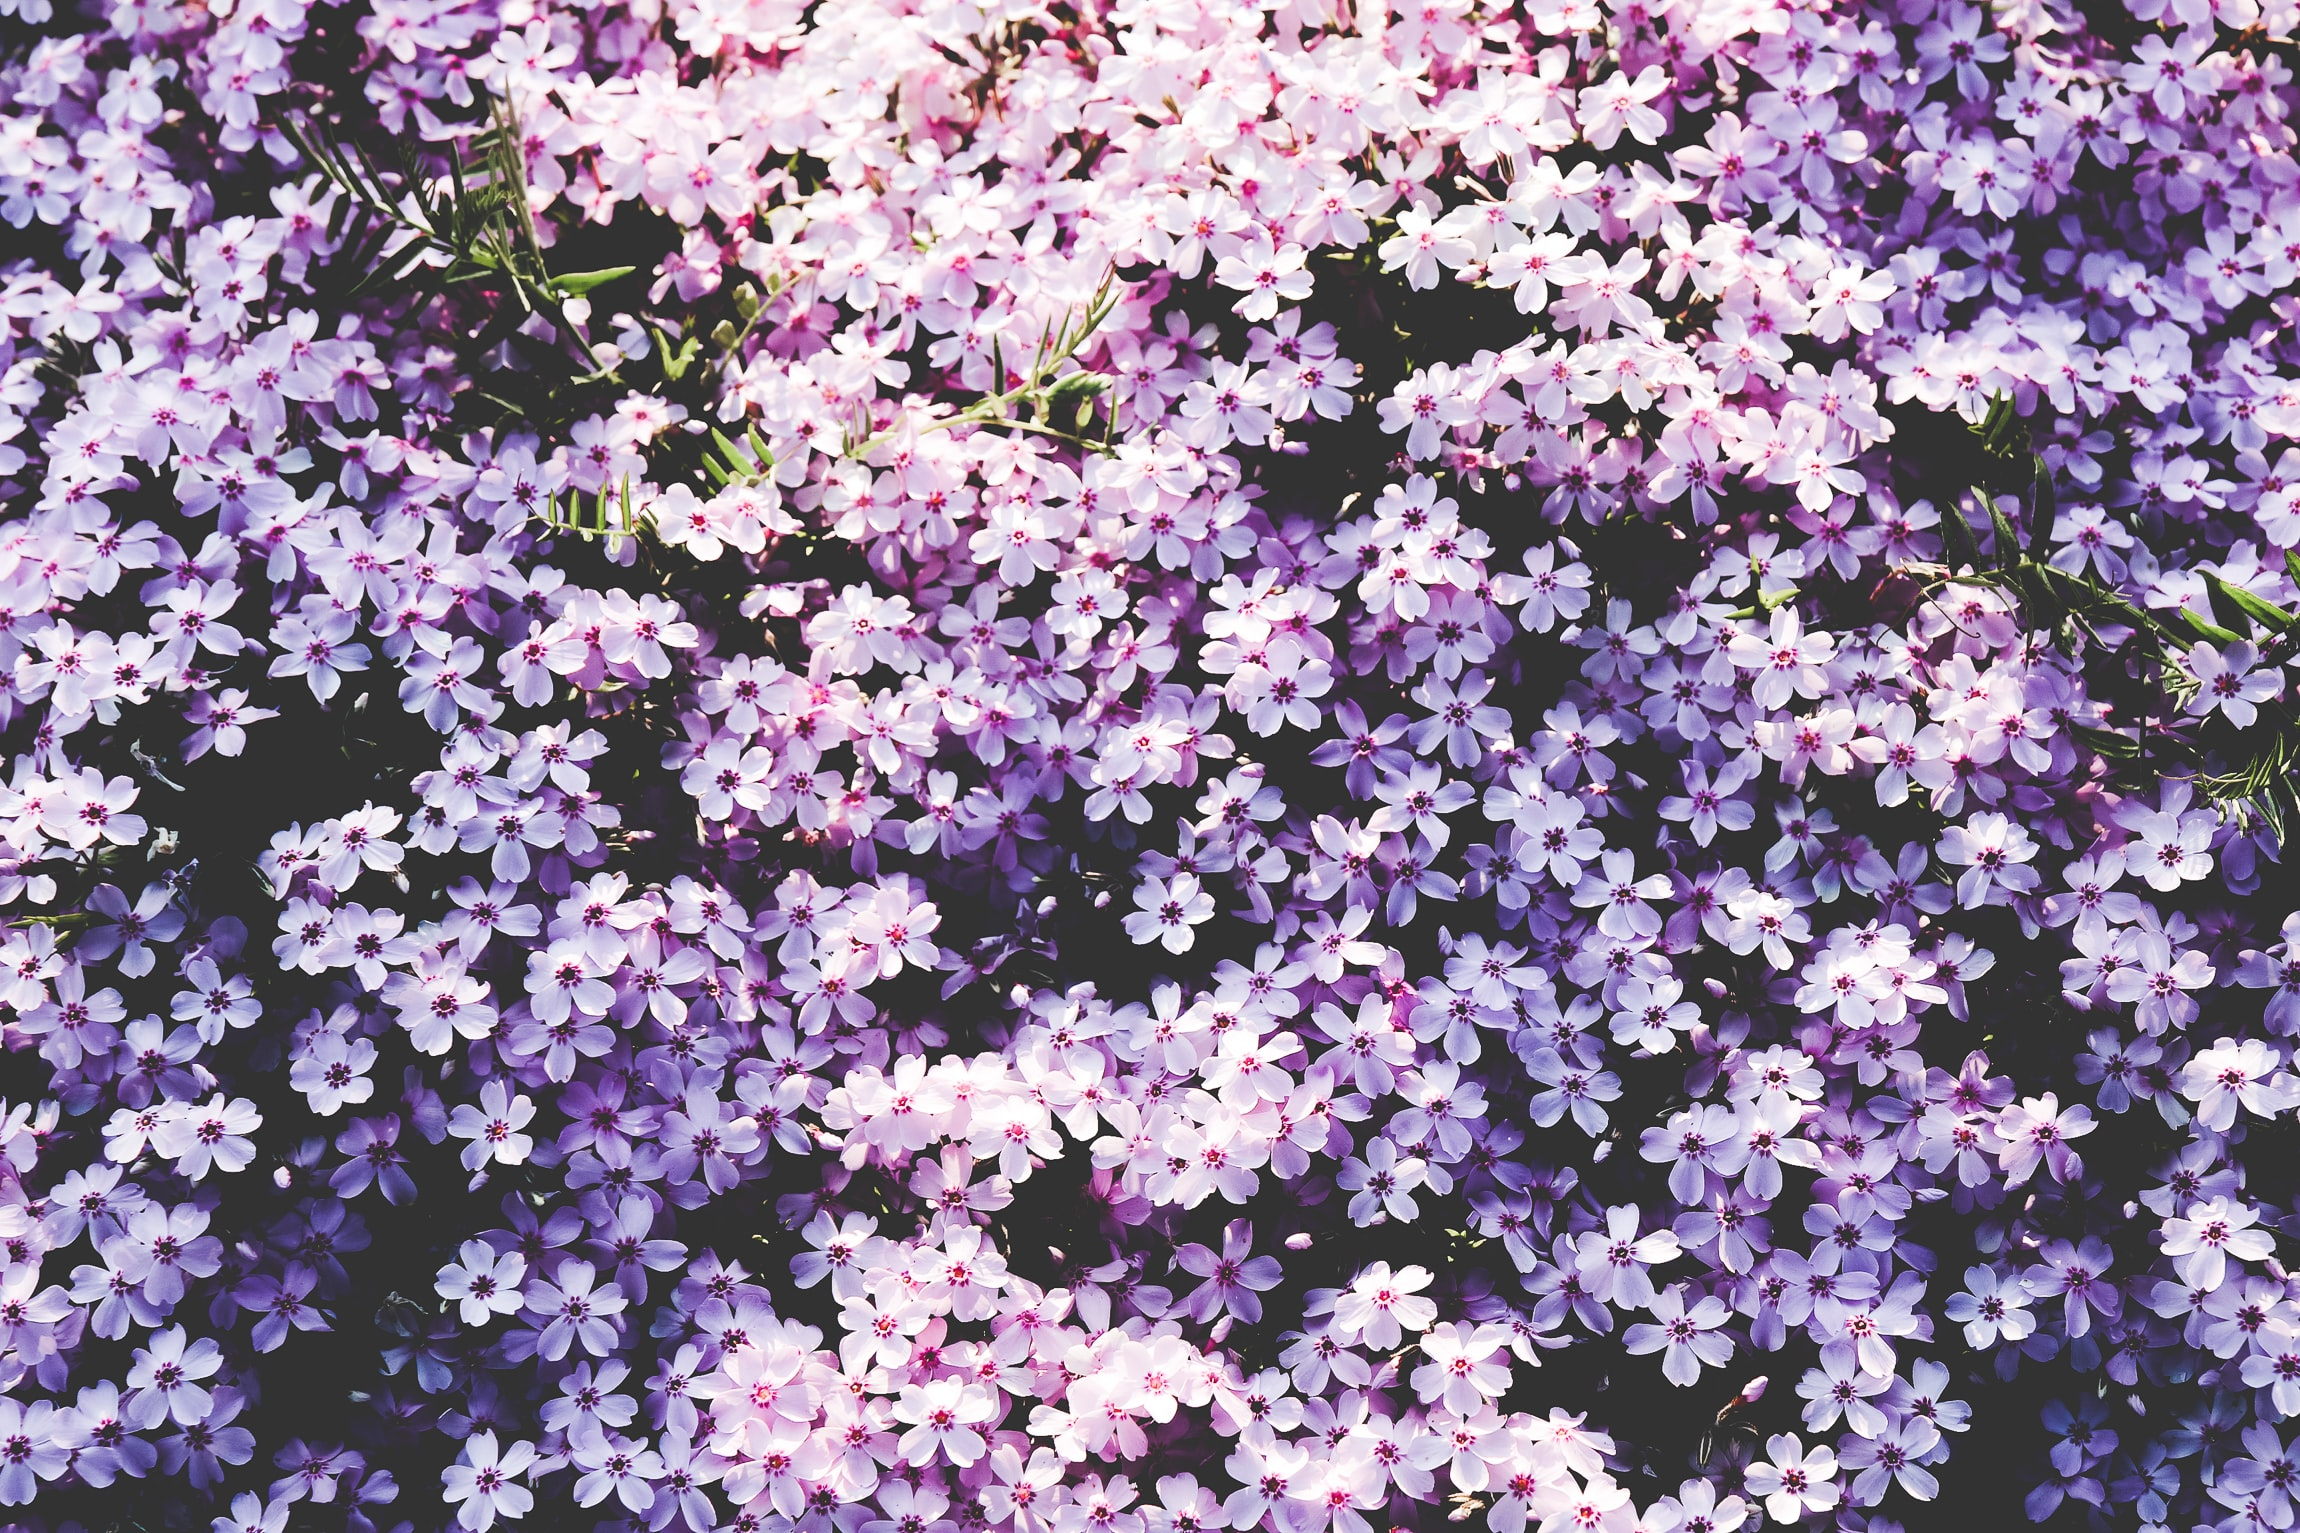 A picture full of purplish white flowers.